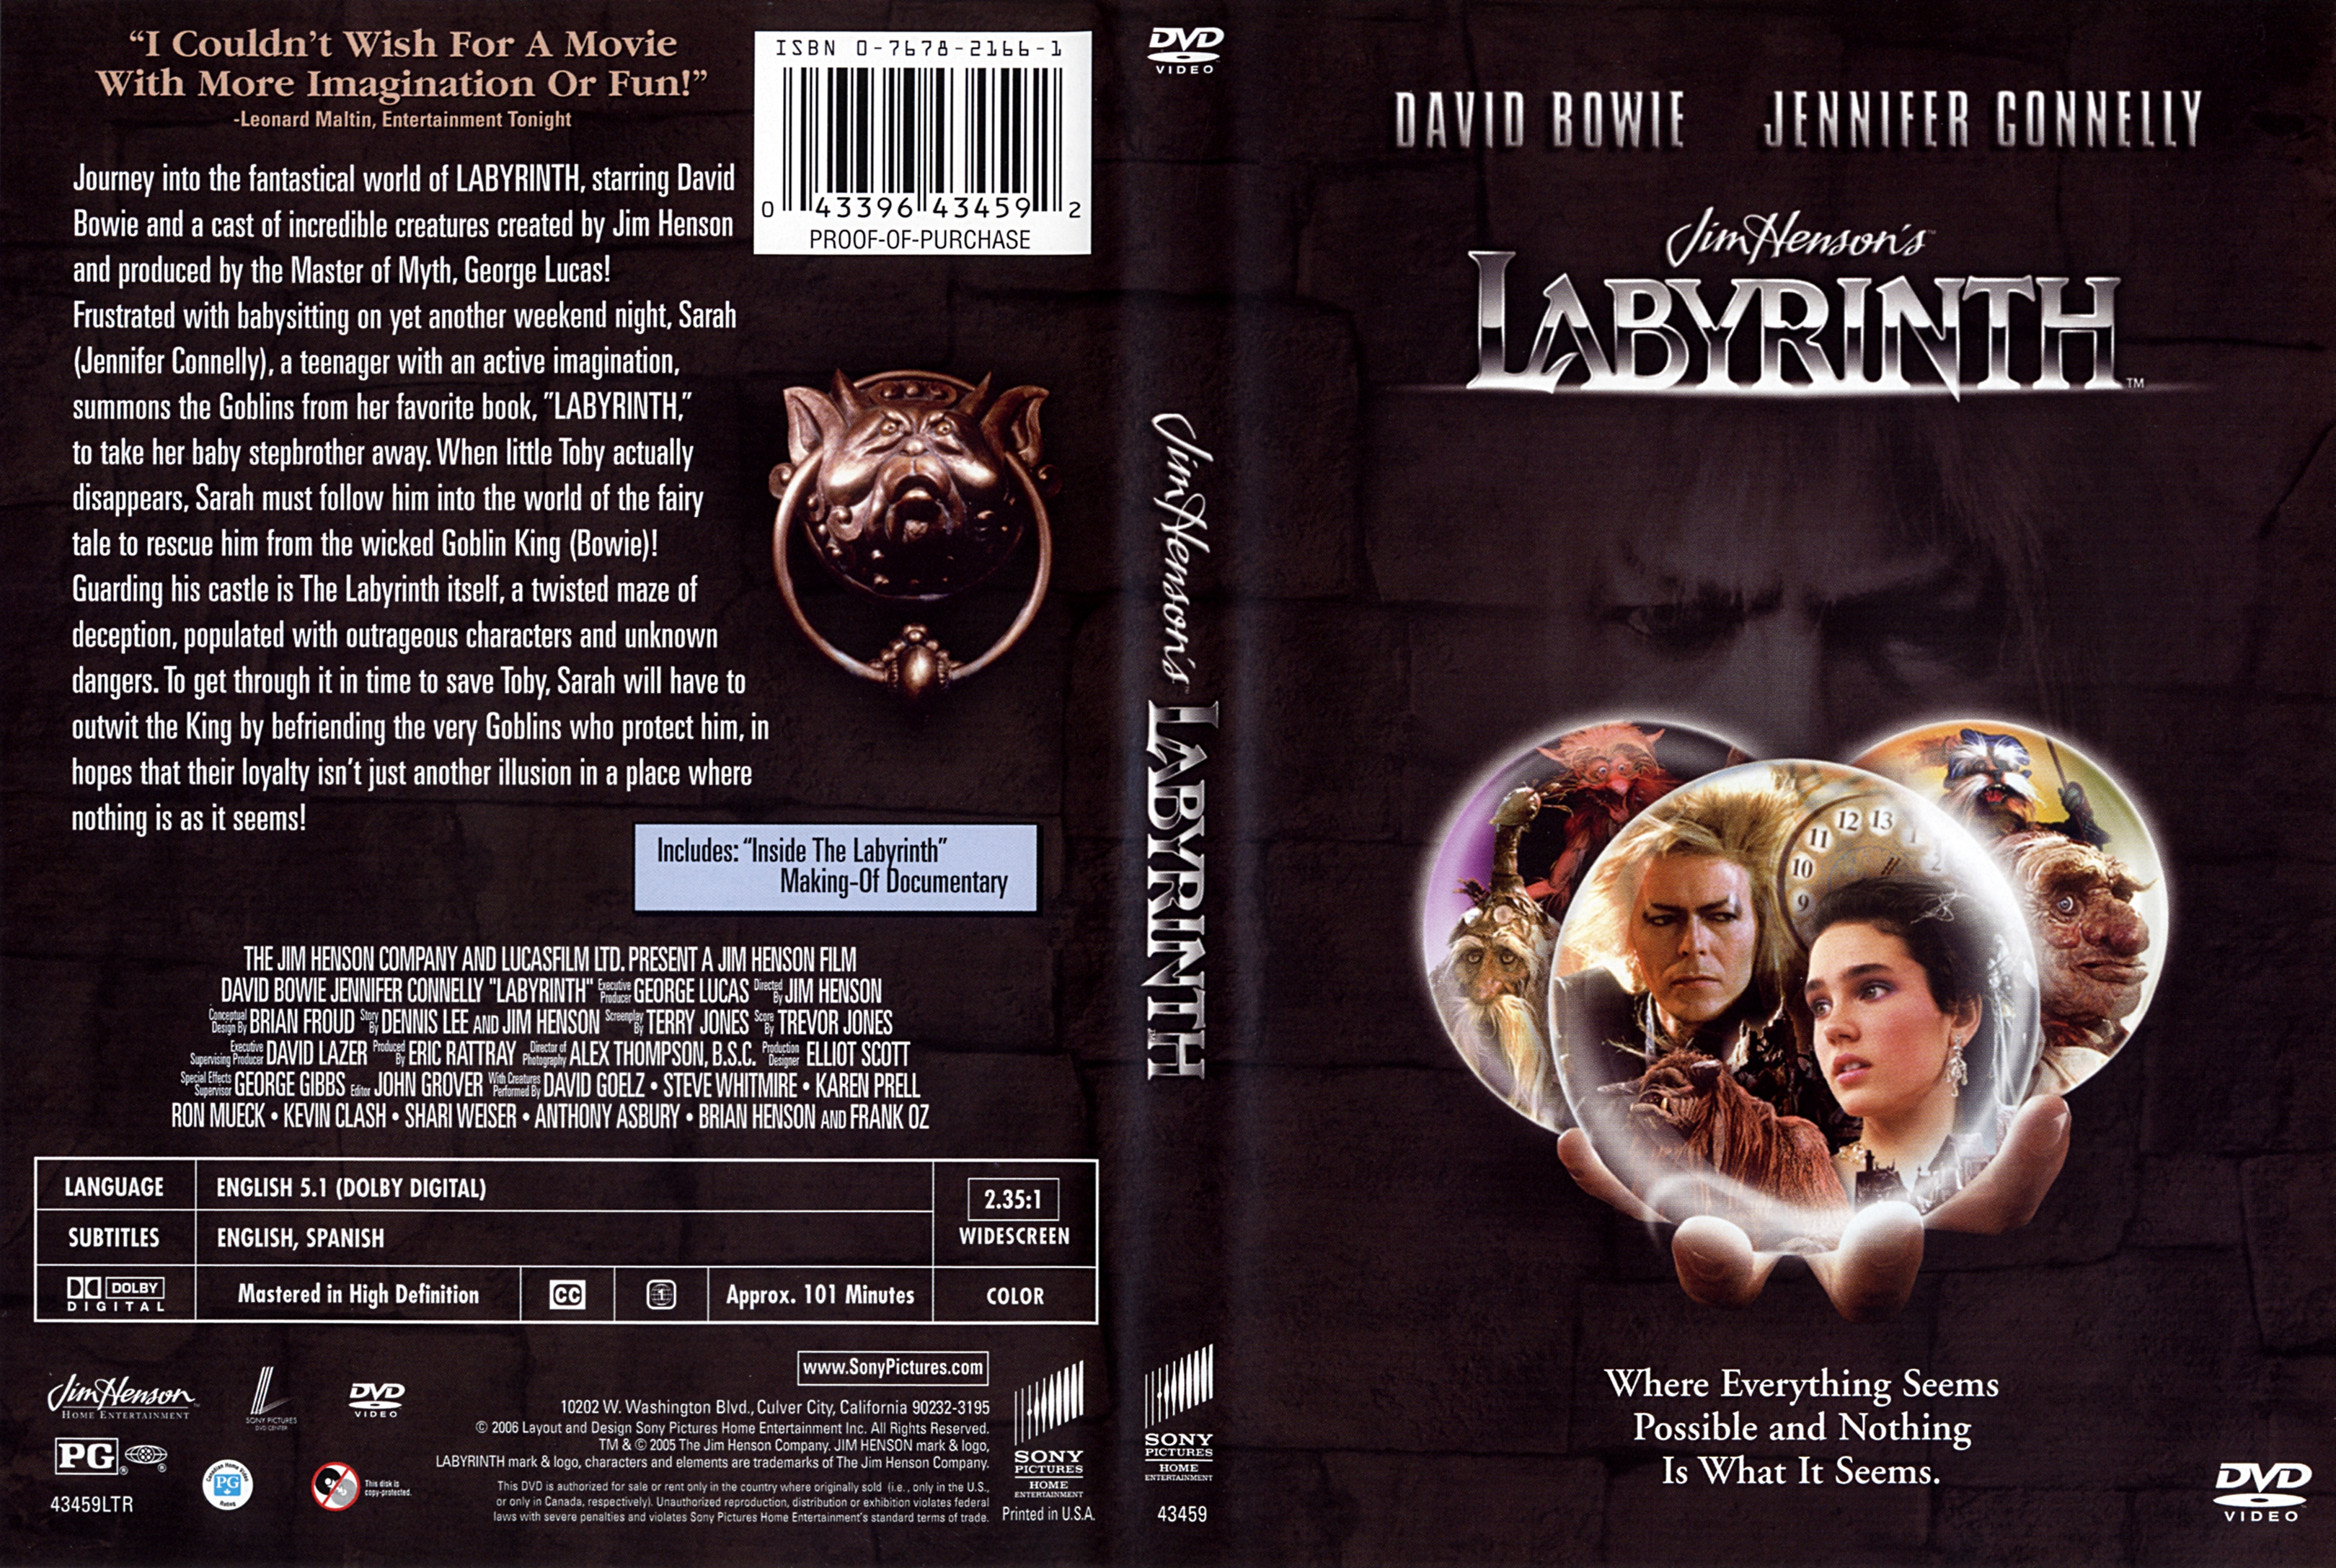 labyrinth_1986_ws_r1-front-www_getdvdcovers_com.jpg